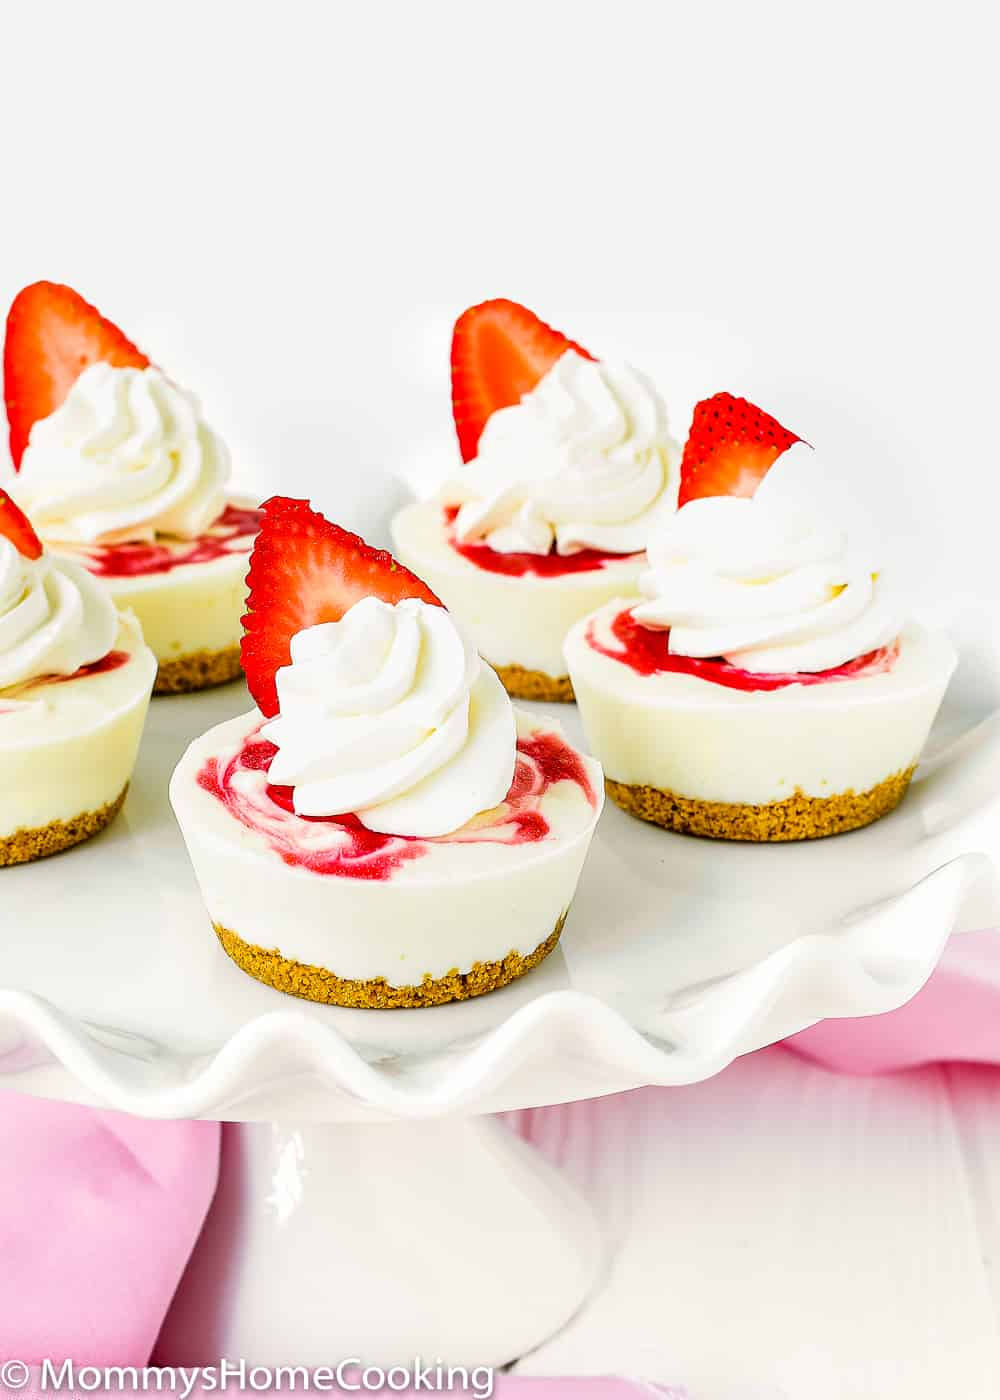 Mini Greek Yogurt Strawberry Cheesecakes in a serving plate